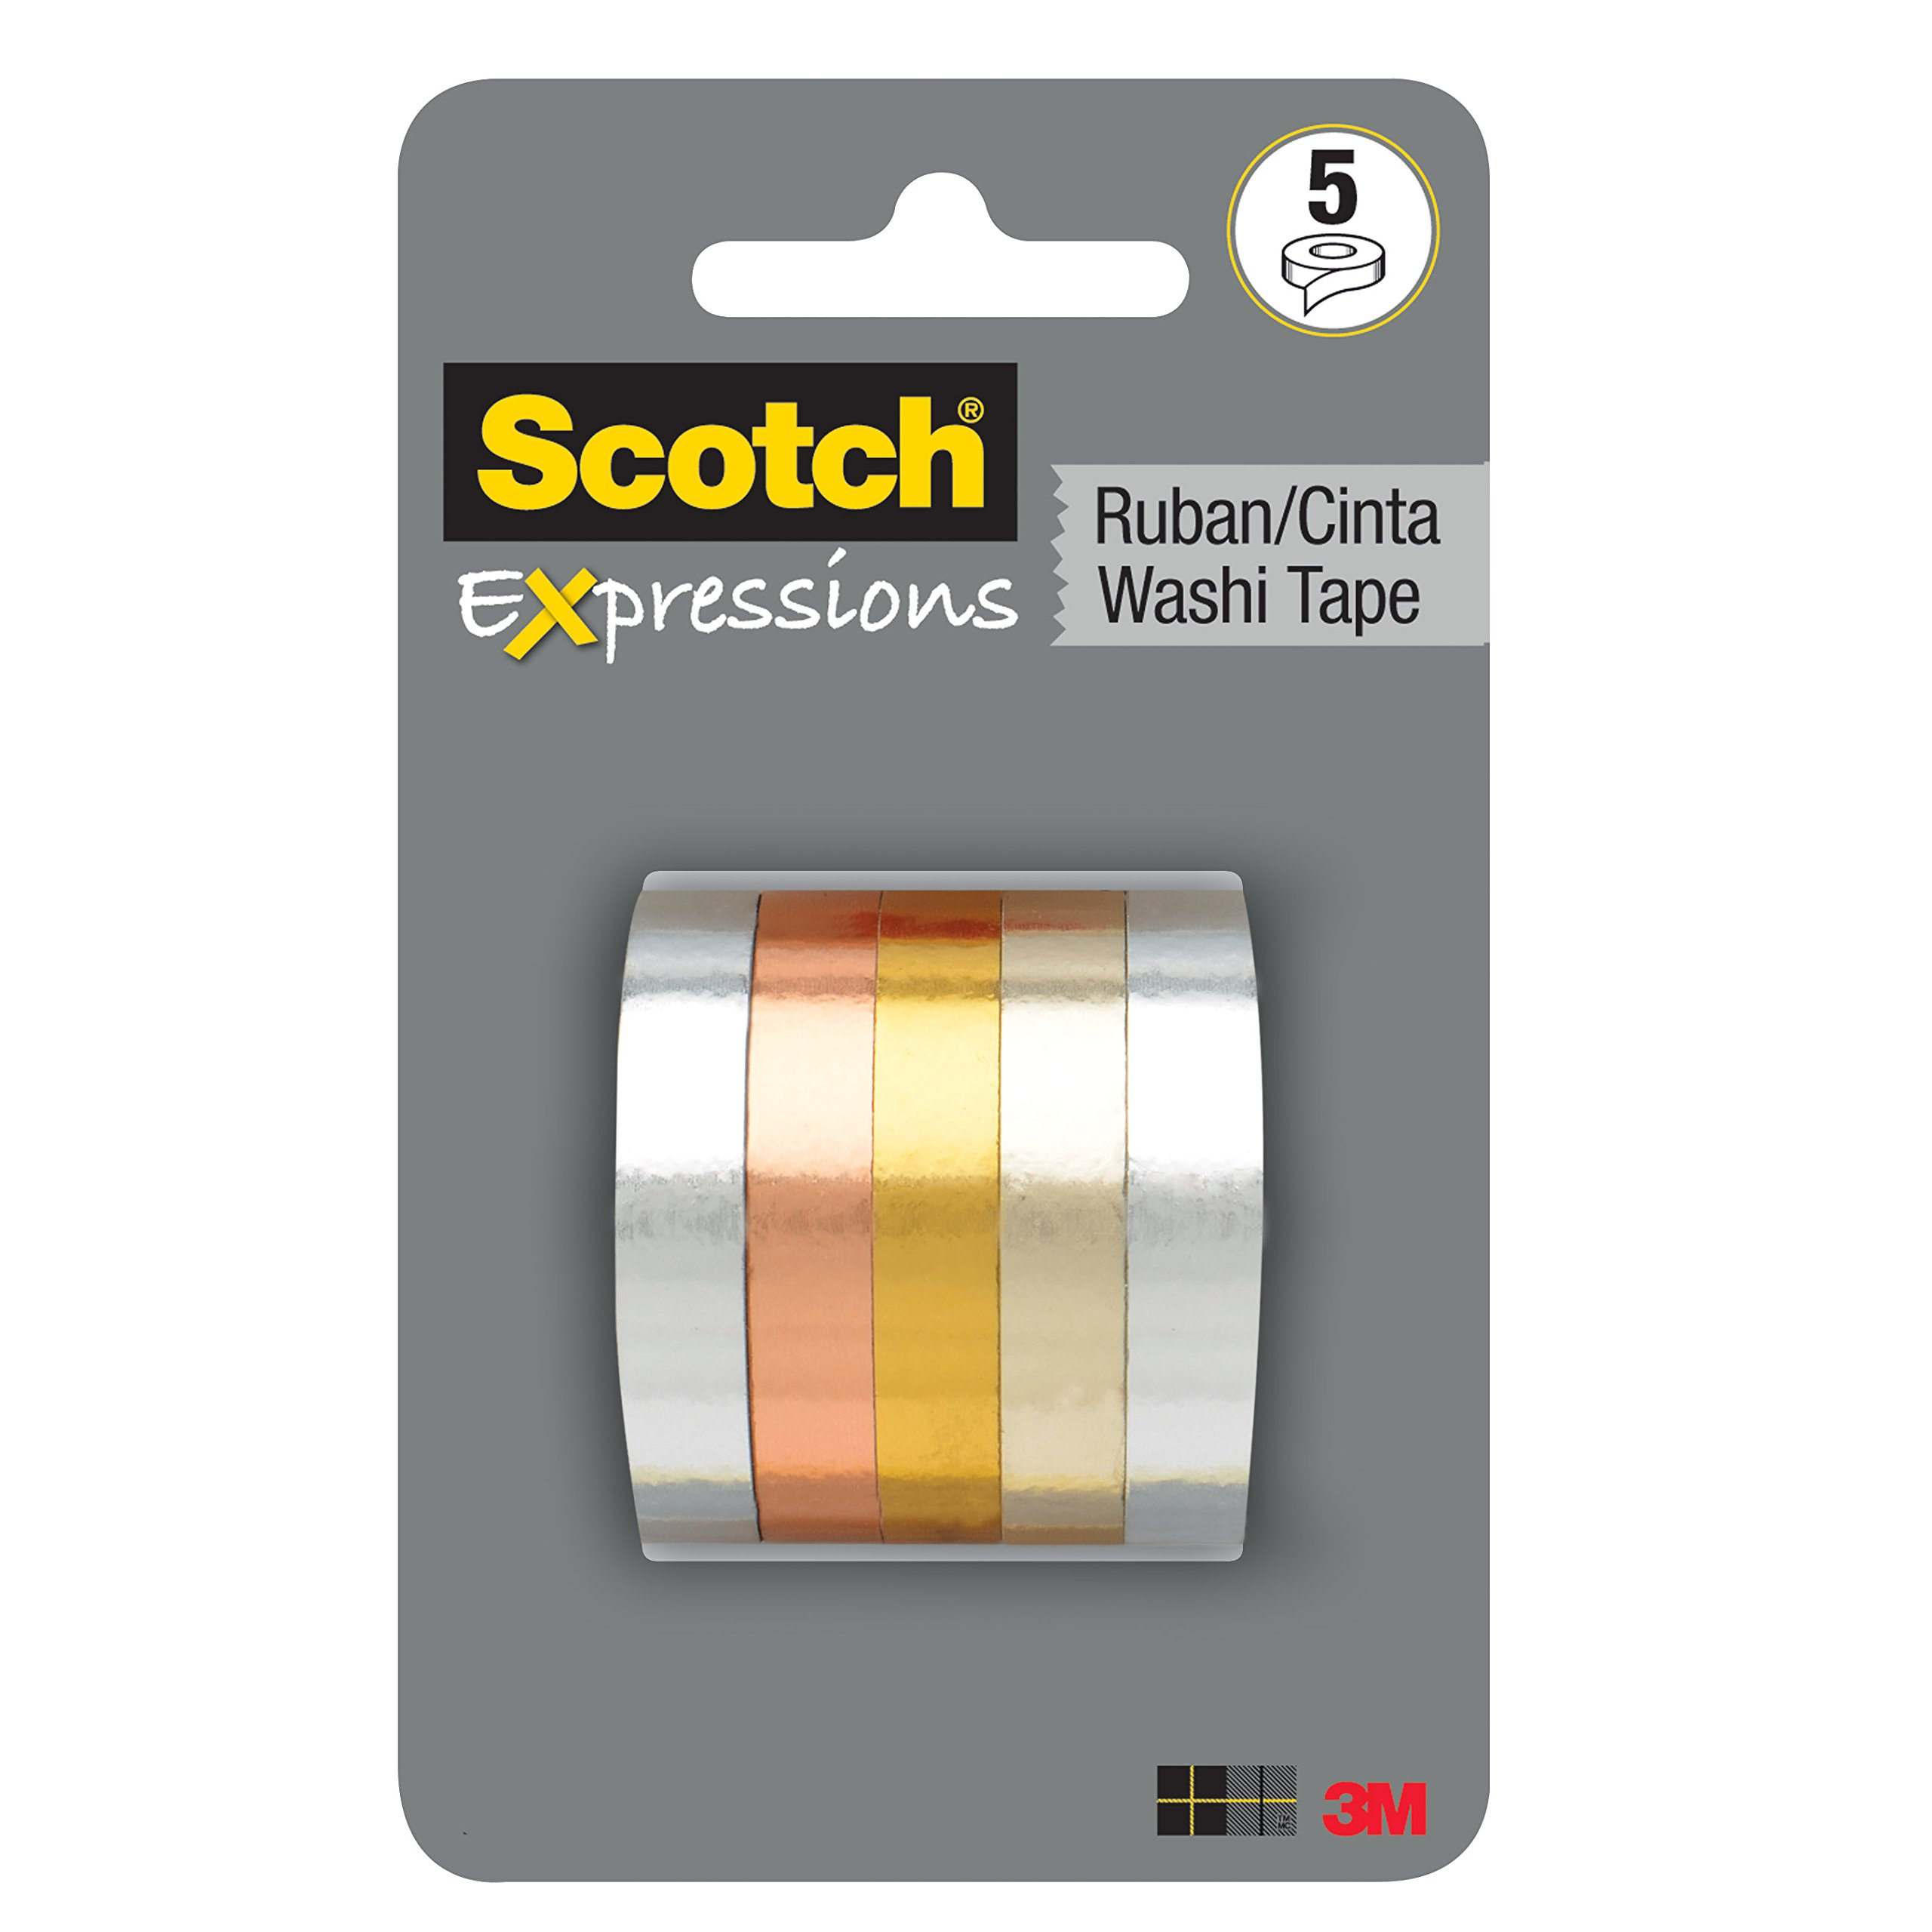 C1017-5-P1 5 Rolls//pk Thin Foil Collection - 2 Pack Scotch Expressions Washi Tape Multi Pack